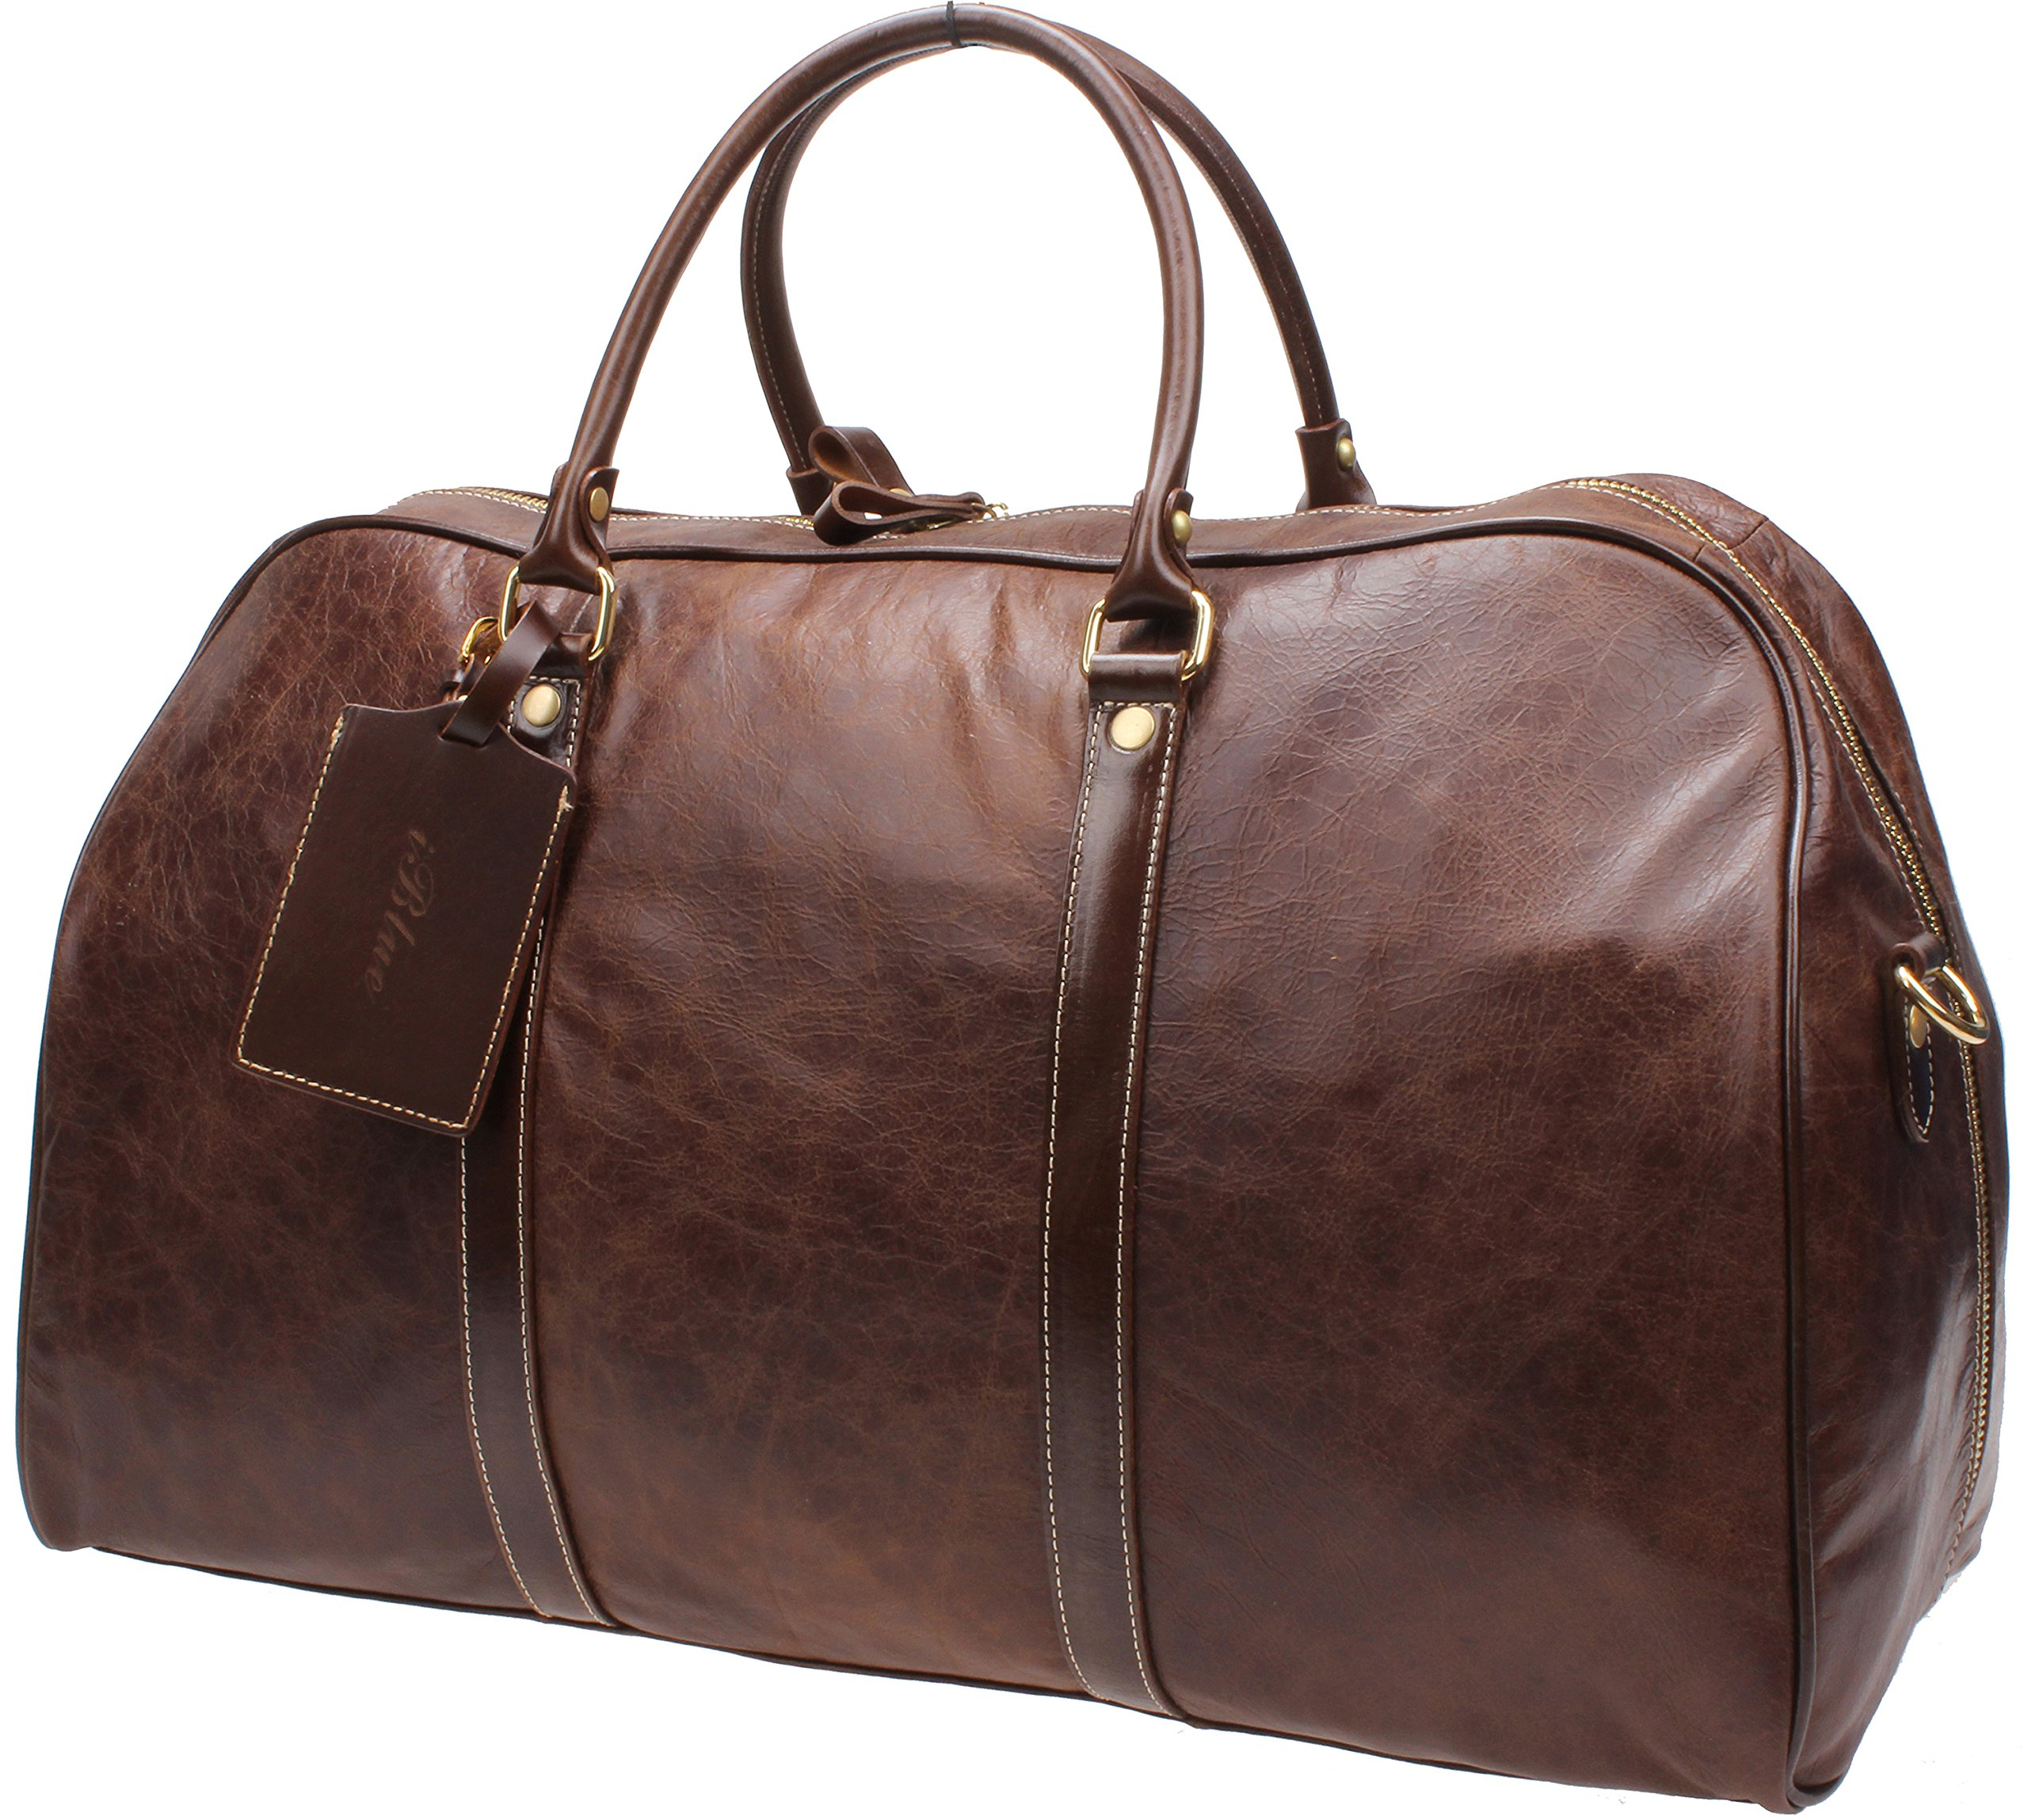 Iblue Mens Genuine Leather Crafted Overnight Travel Duffel Roomy Weekend Carry On Tote Airplane 22in#B002 (XL, dark brown) by iblue